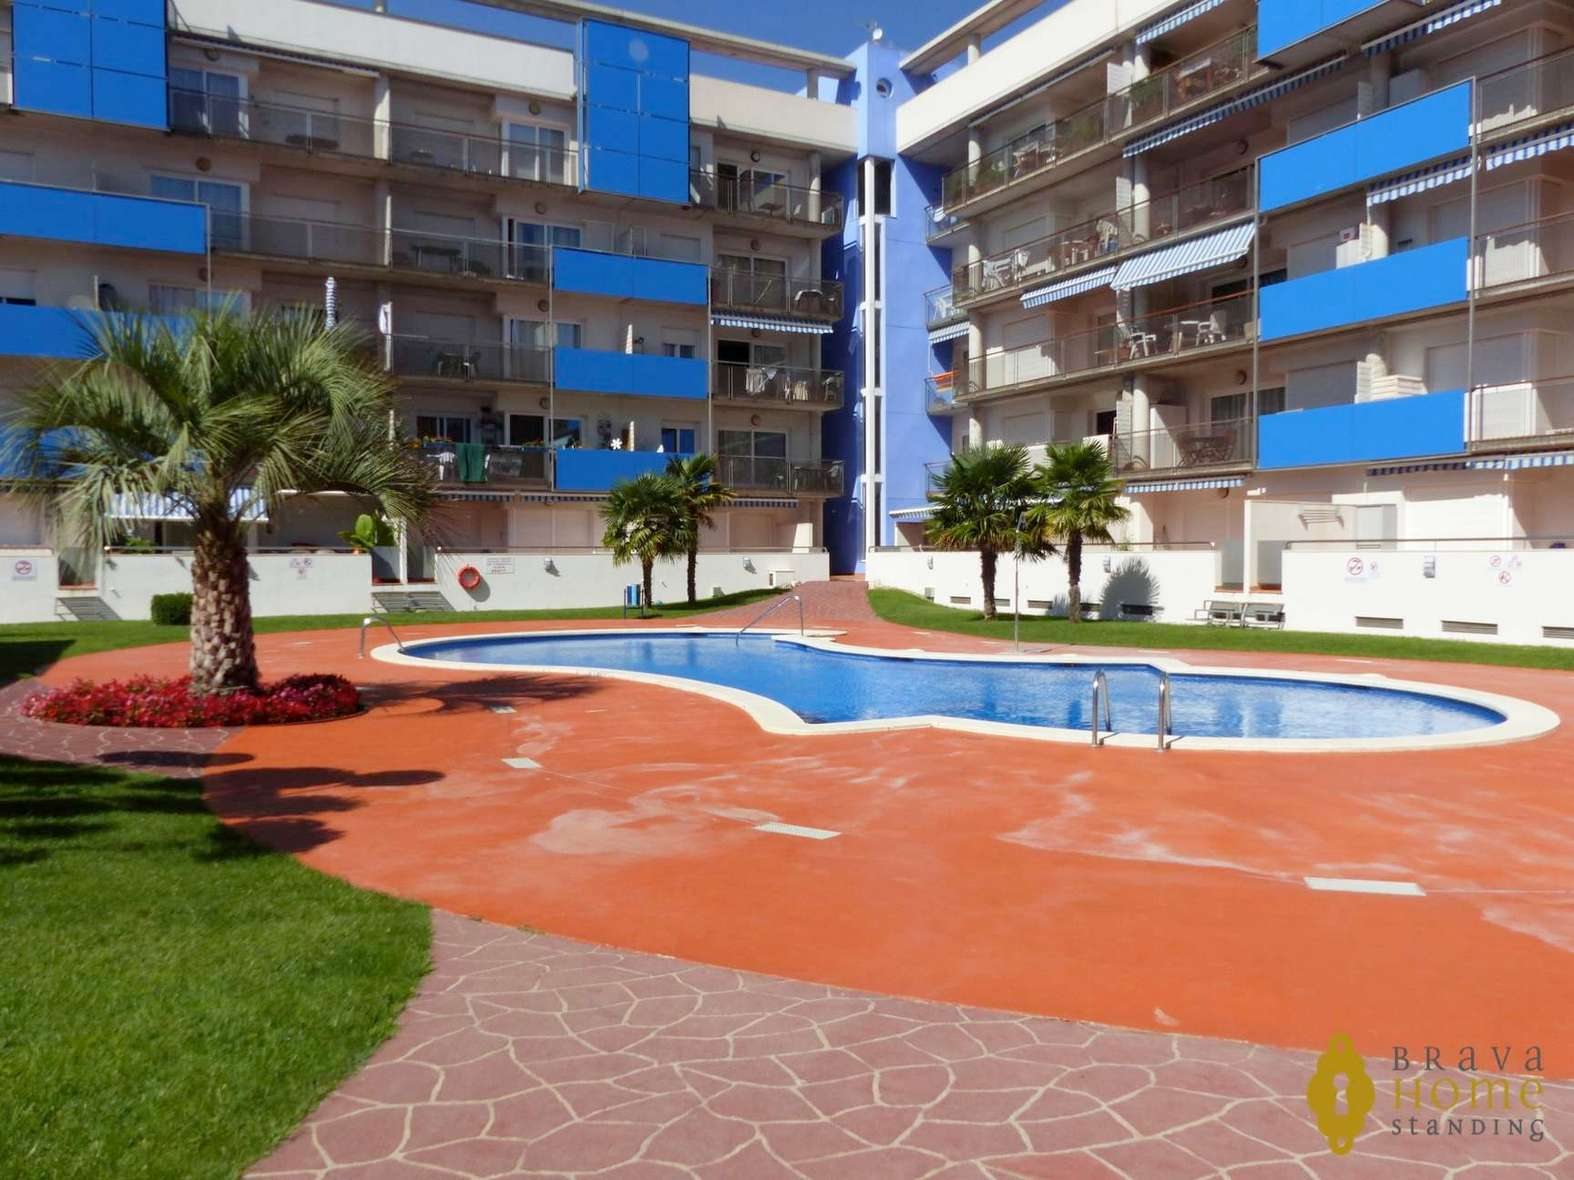 Superb apartment with private garden for sale in Rosas - Santa Margarita